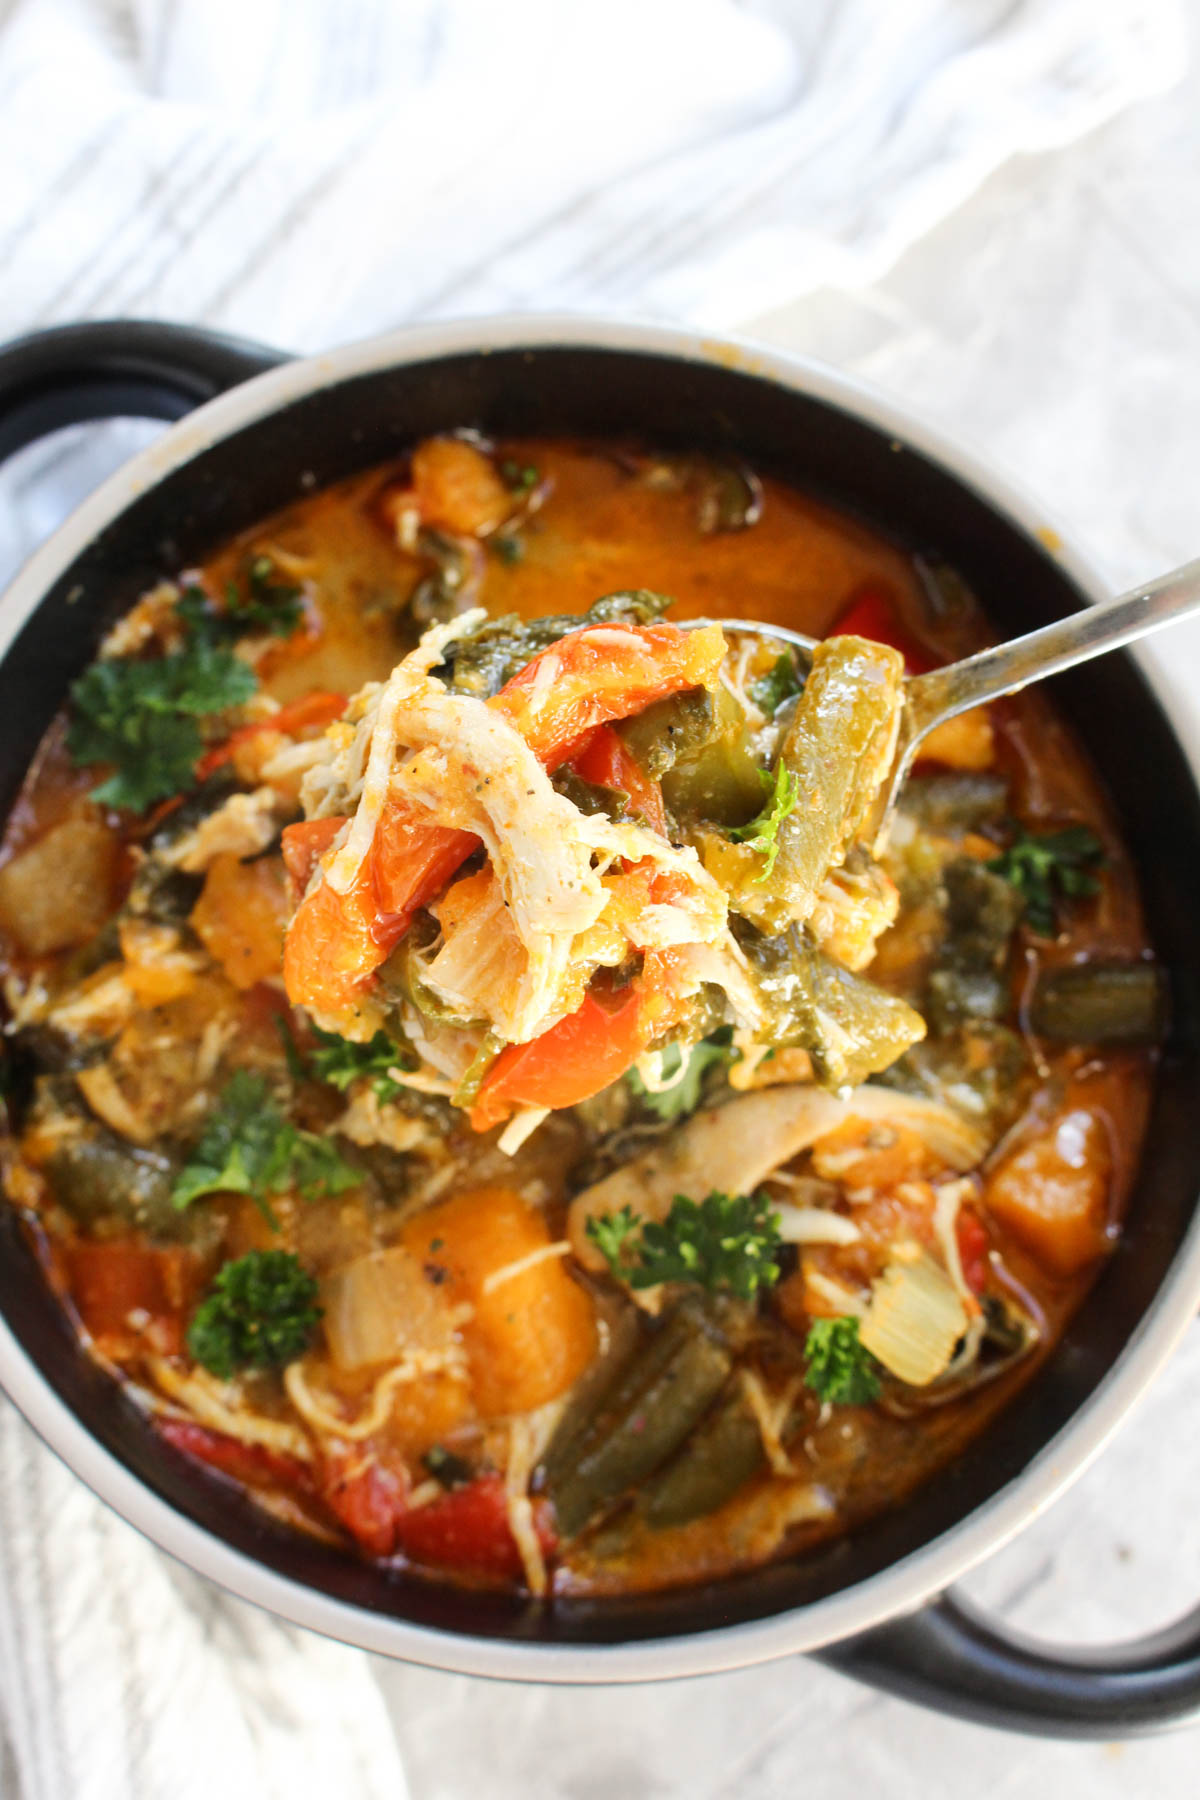 Large spoonful of Thai Red Curry Chicken Soup.